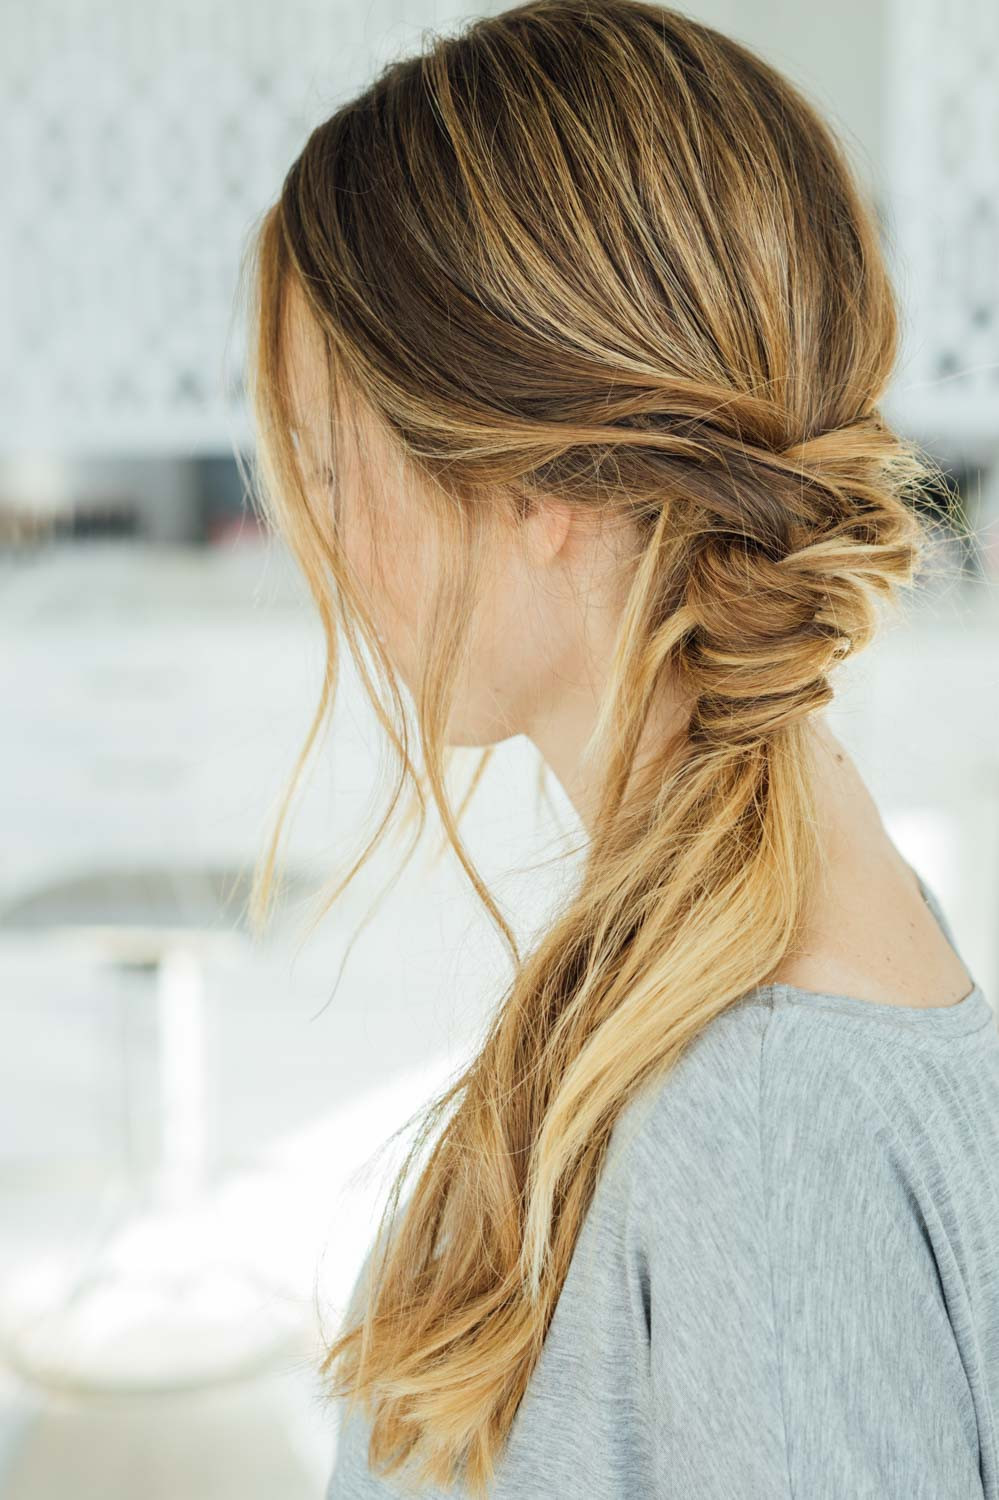 Best ideas about Easy Pretty Hairstyles . Save or Pin 16 Easy Hairstyles for Hot Summer Days Now.